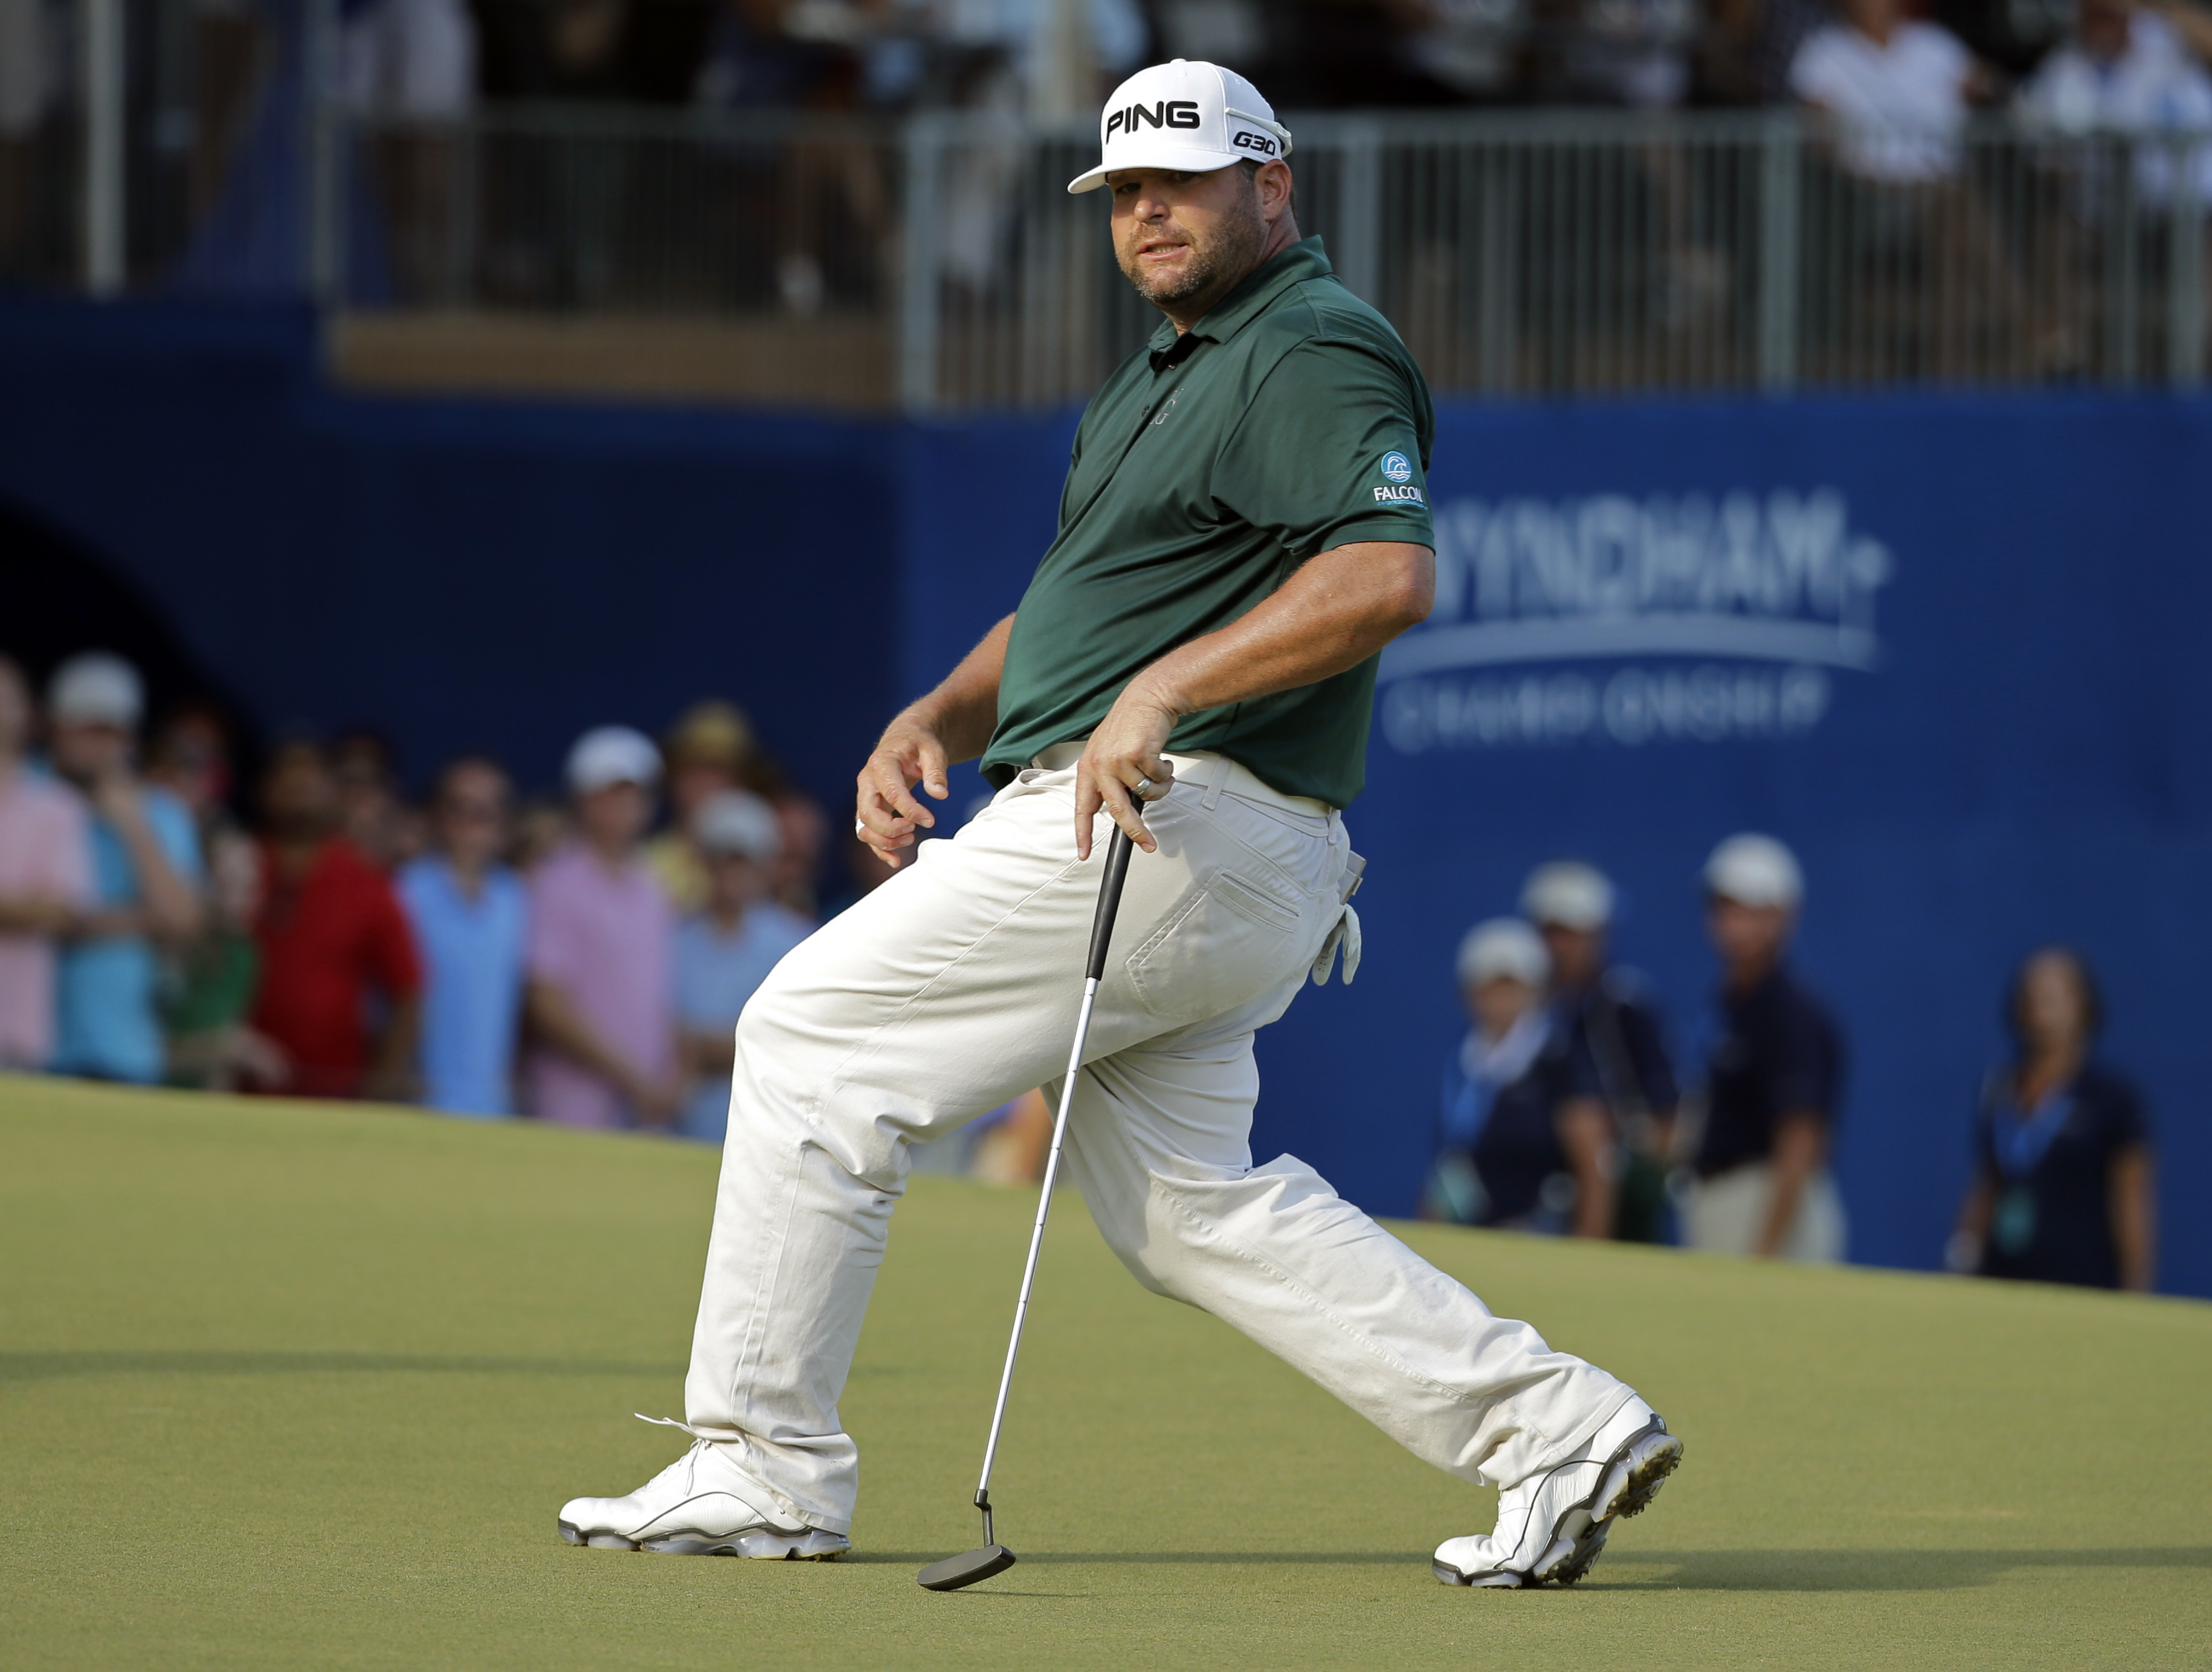 Jason Gore reacts after missing a birdie putt on the 18th hole that would have tied him with the leader during the final round of the Wyndham Championship golf tournament at Sedgefield Country Club in Greensboro, N.C., Sunday, Aug. 23, 2015. Davis Love II